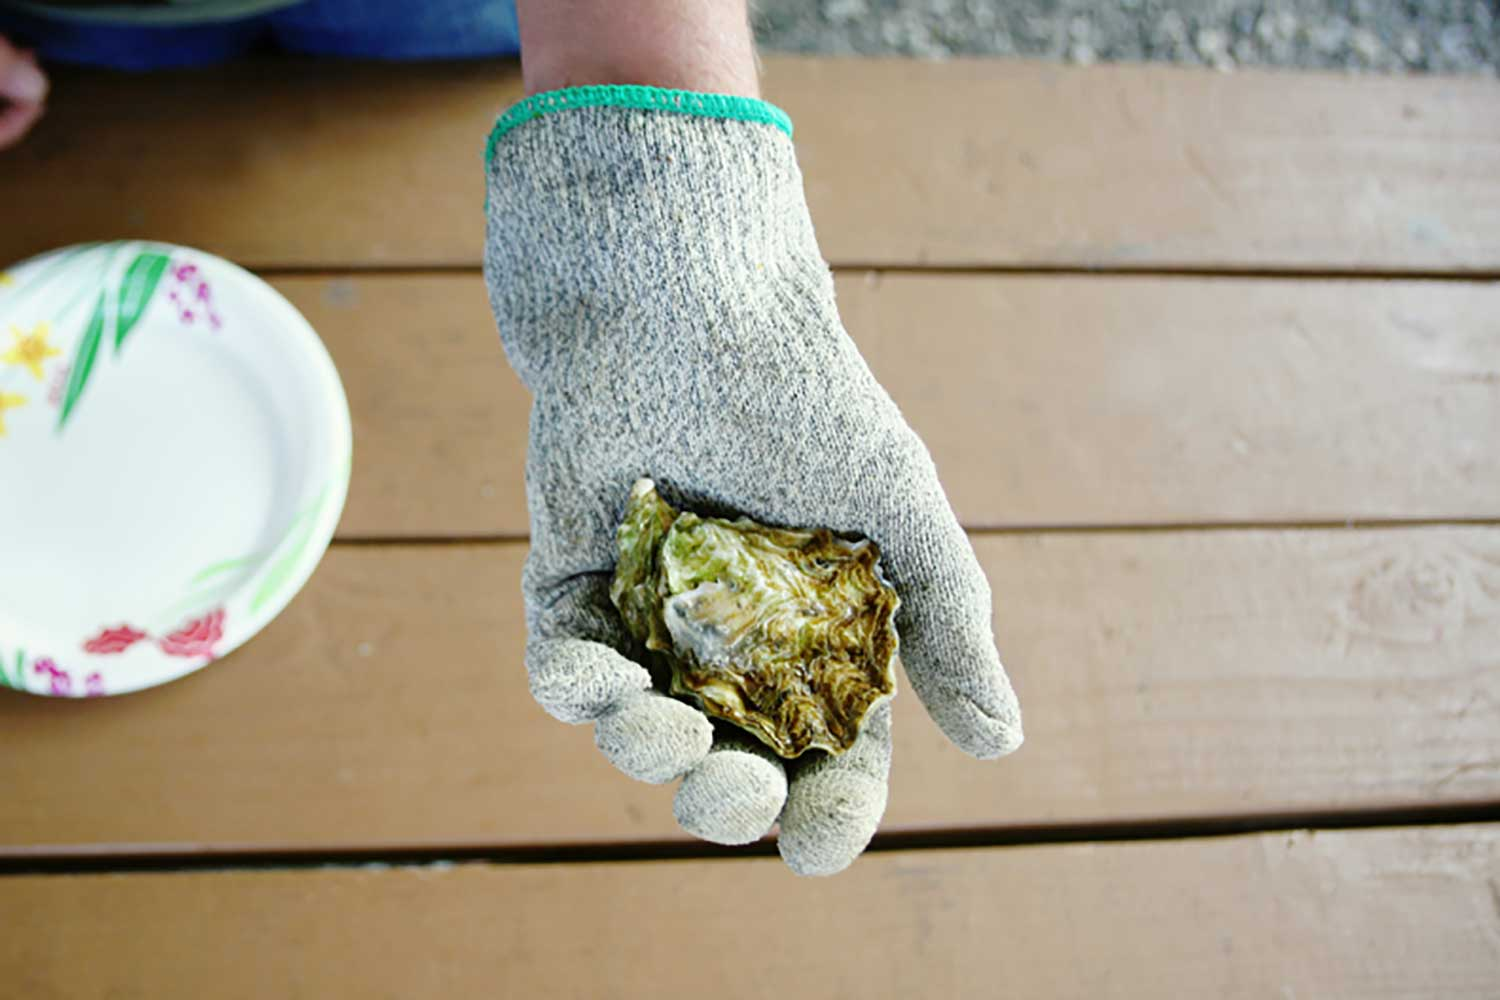 Glove covered hand holding an oyster